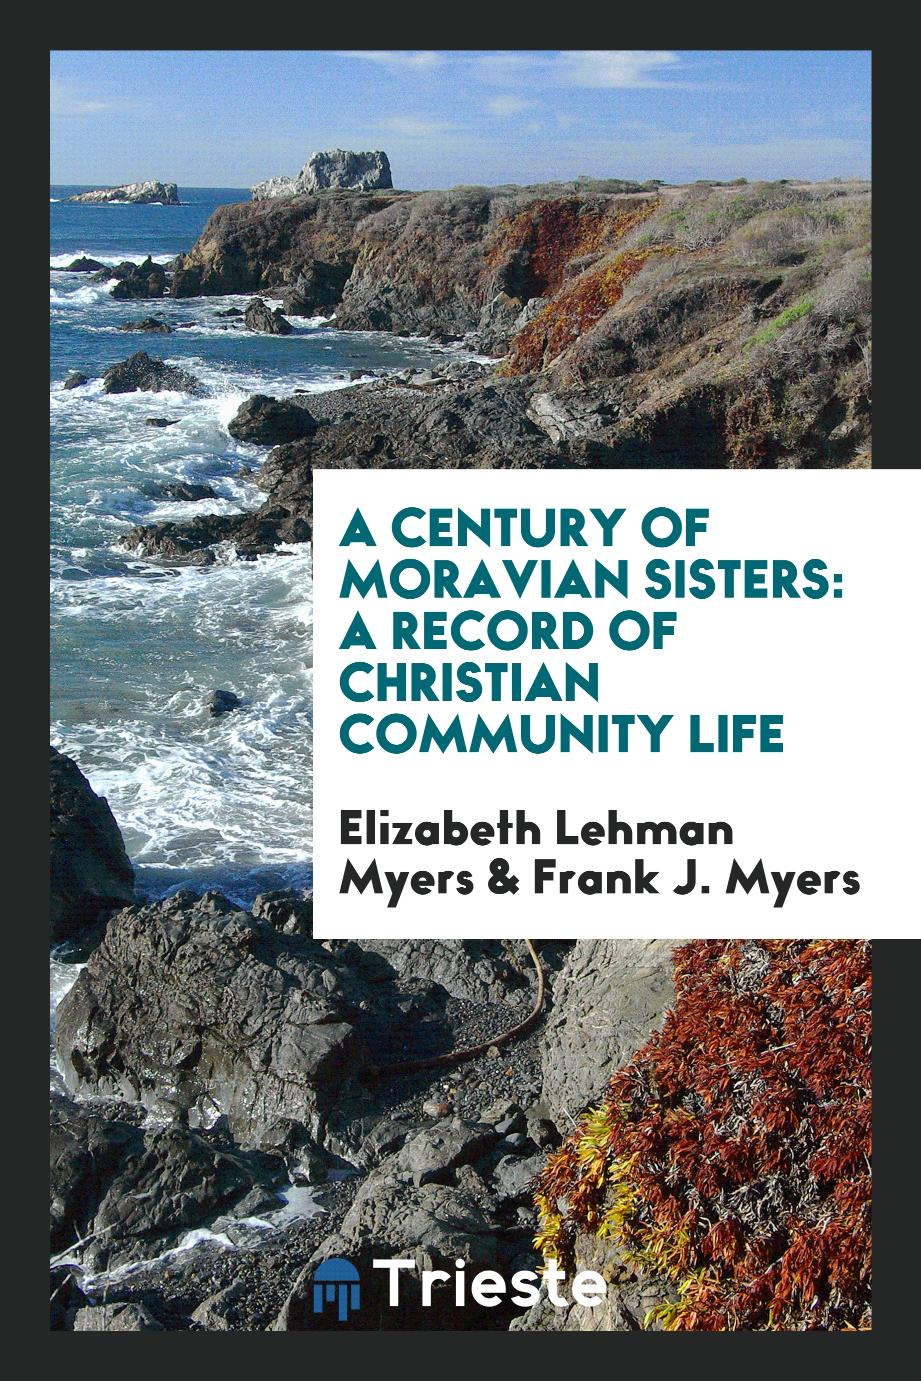 A Century of Moravian Sisters: A Record of Christian Community Life